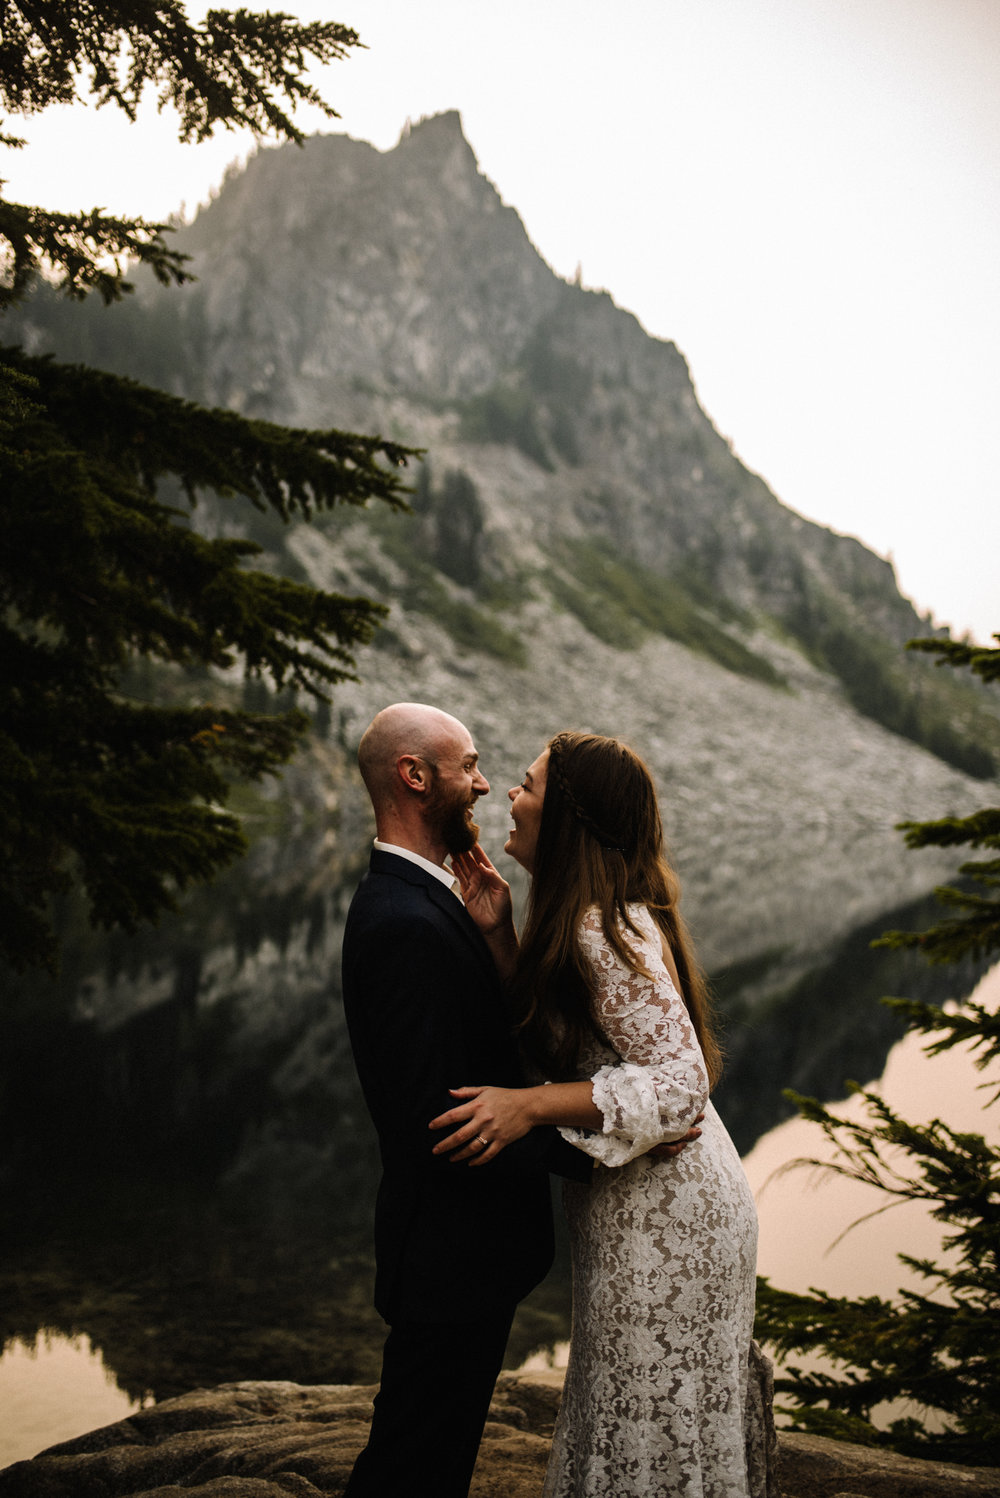 Megan and Andrew Lake Valhalla Washington PNW Adventure Elopement White Sails Creative Sunrise Hike_4.JPG